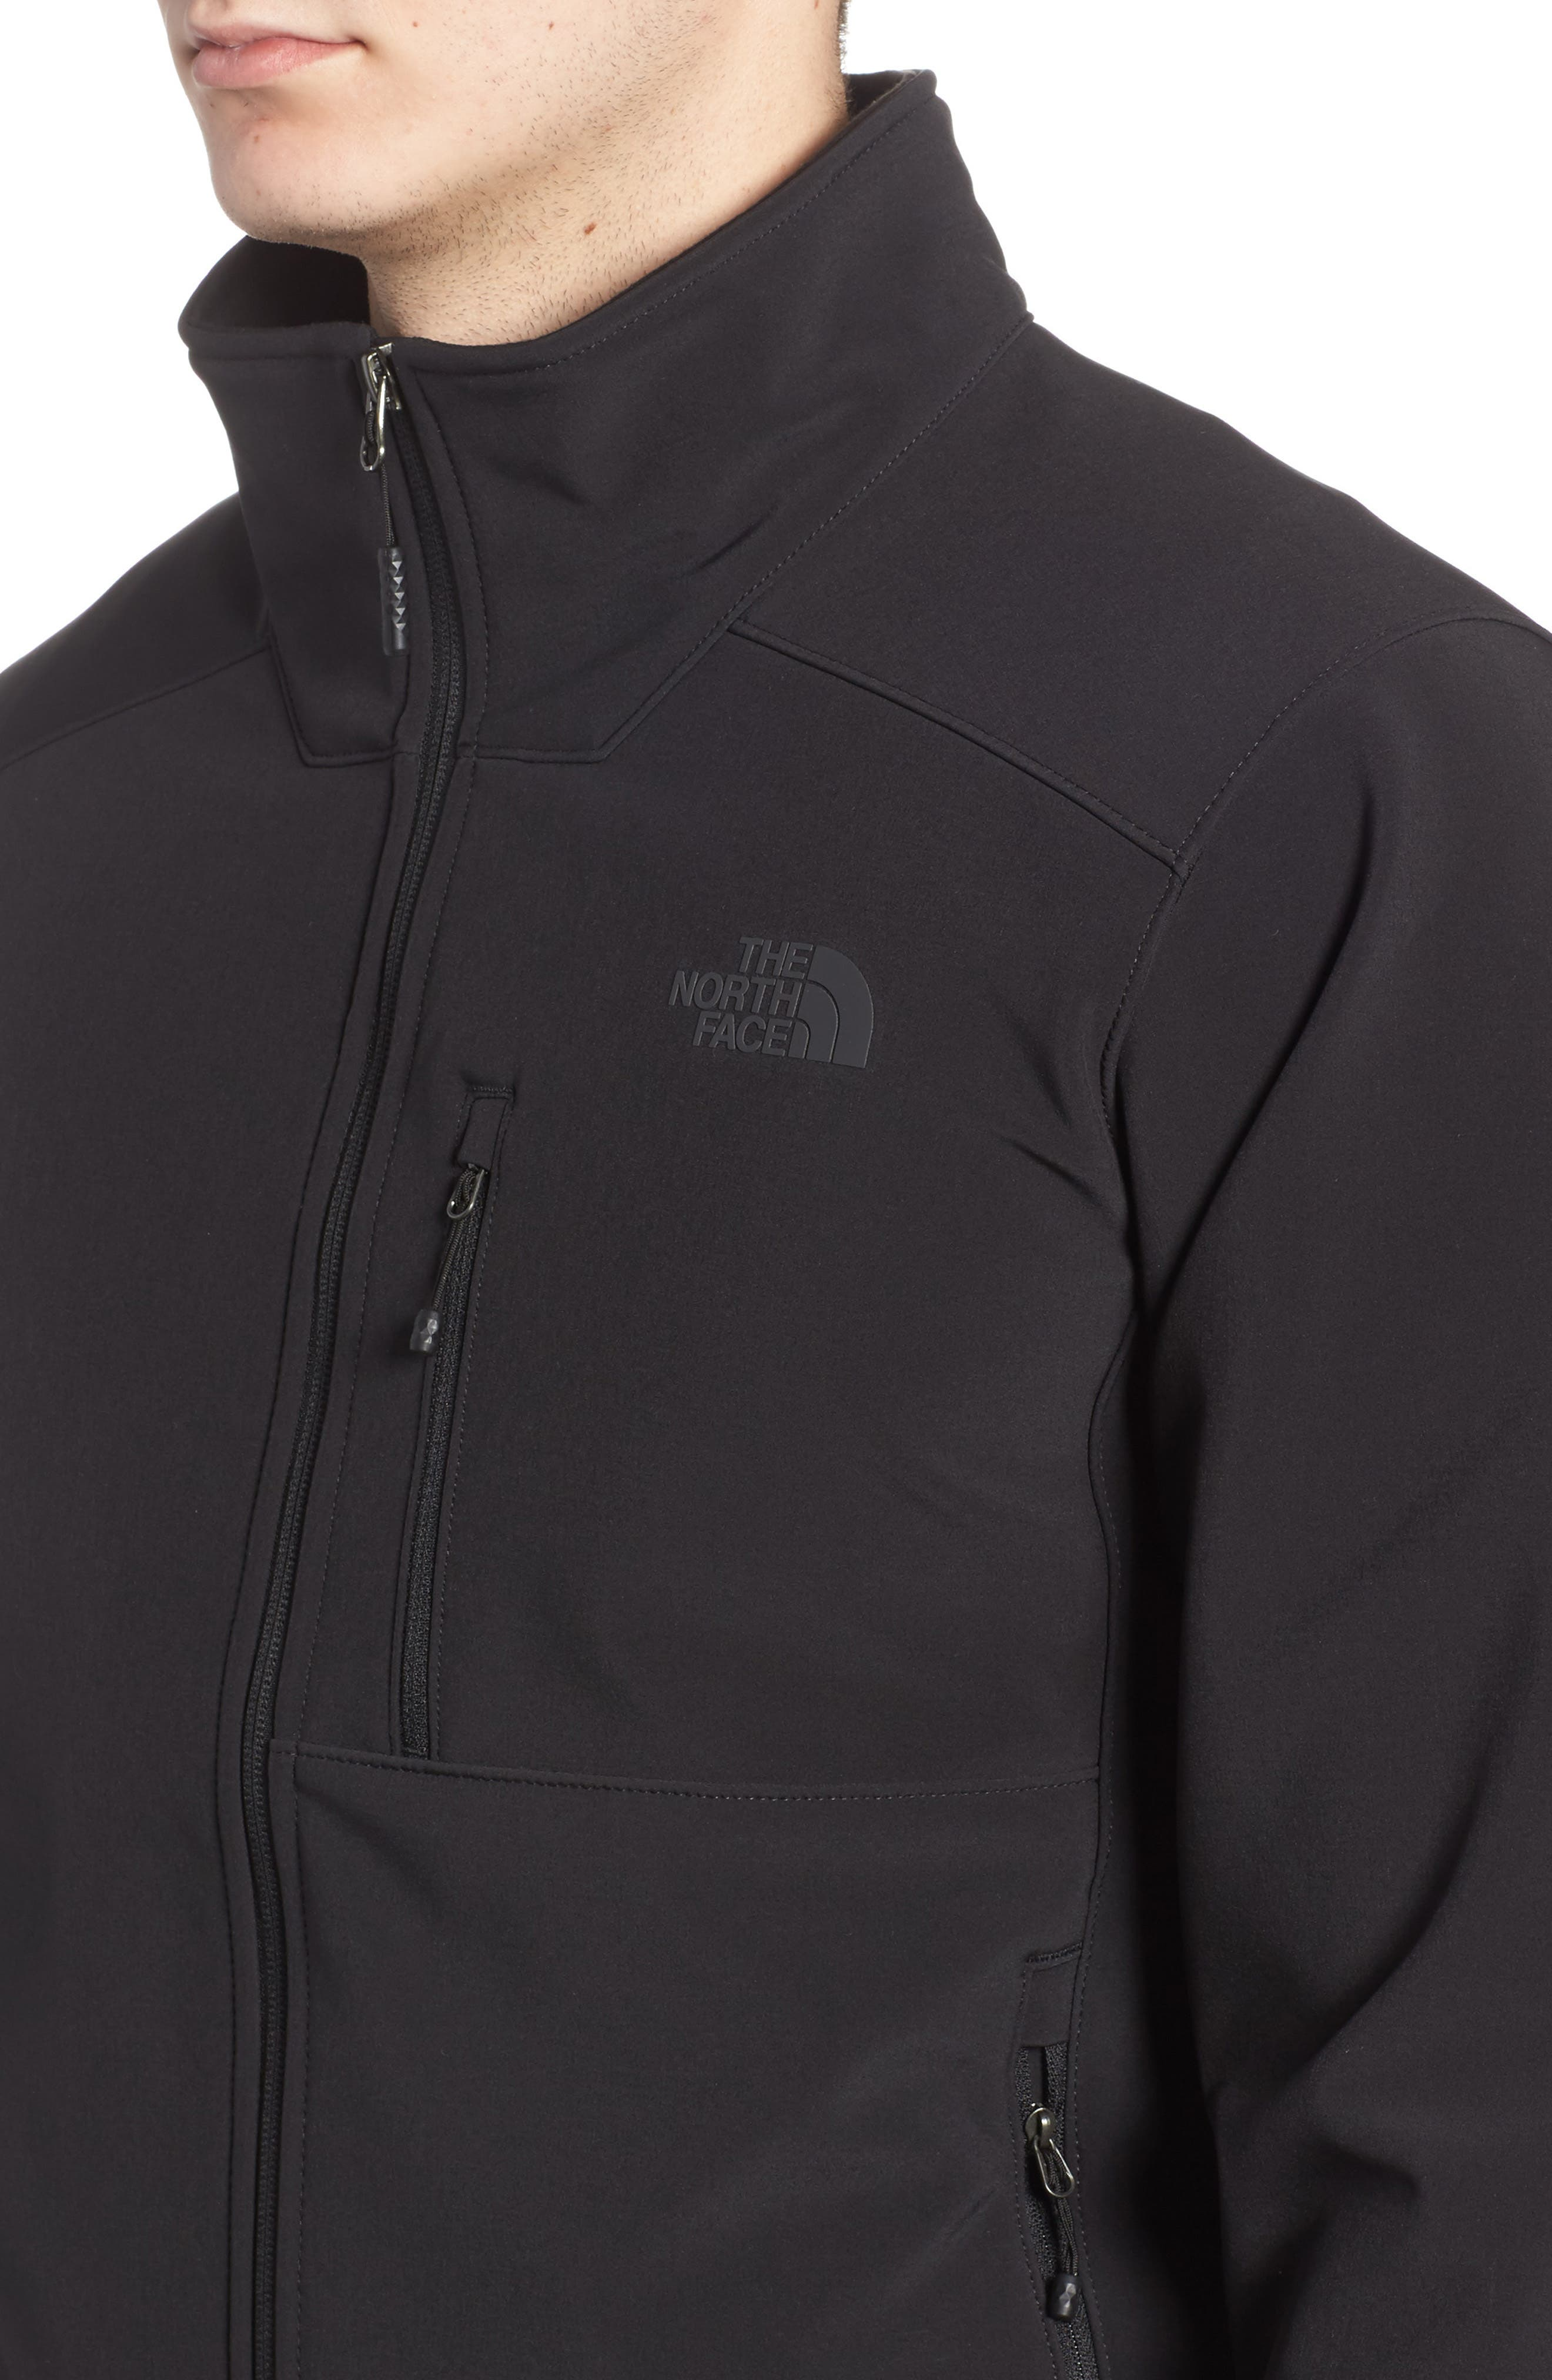 'Apex Bionic 2' Windproof & Water Resistant Soft Shell Jacket,                             Alternate thumbnail 37, color,